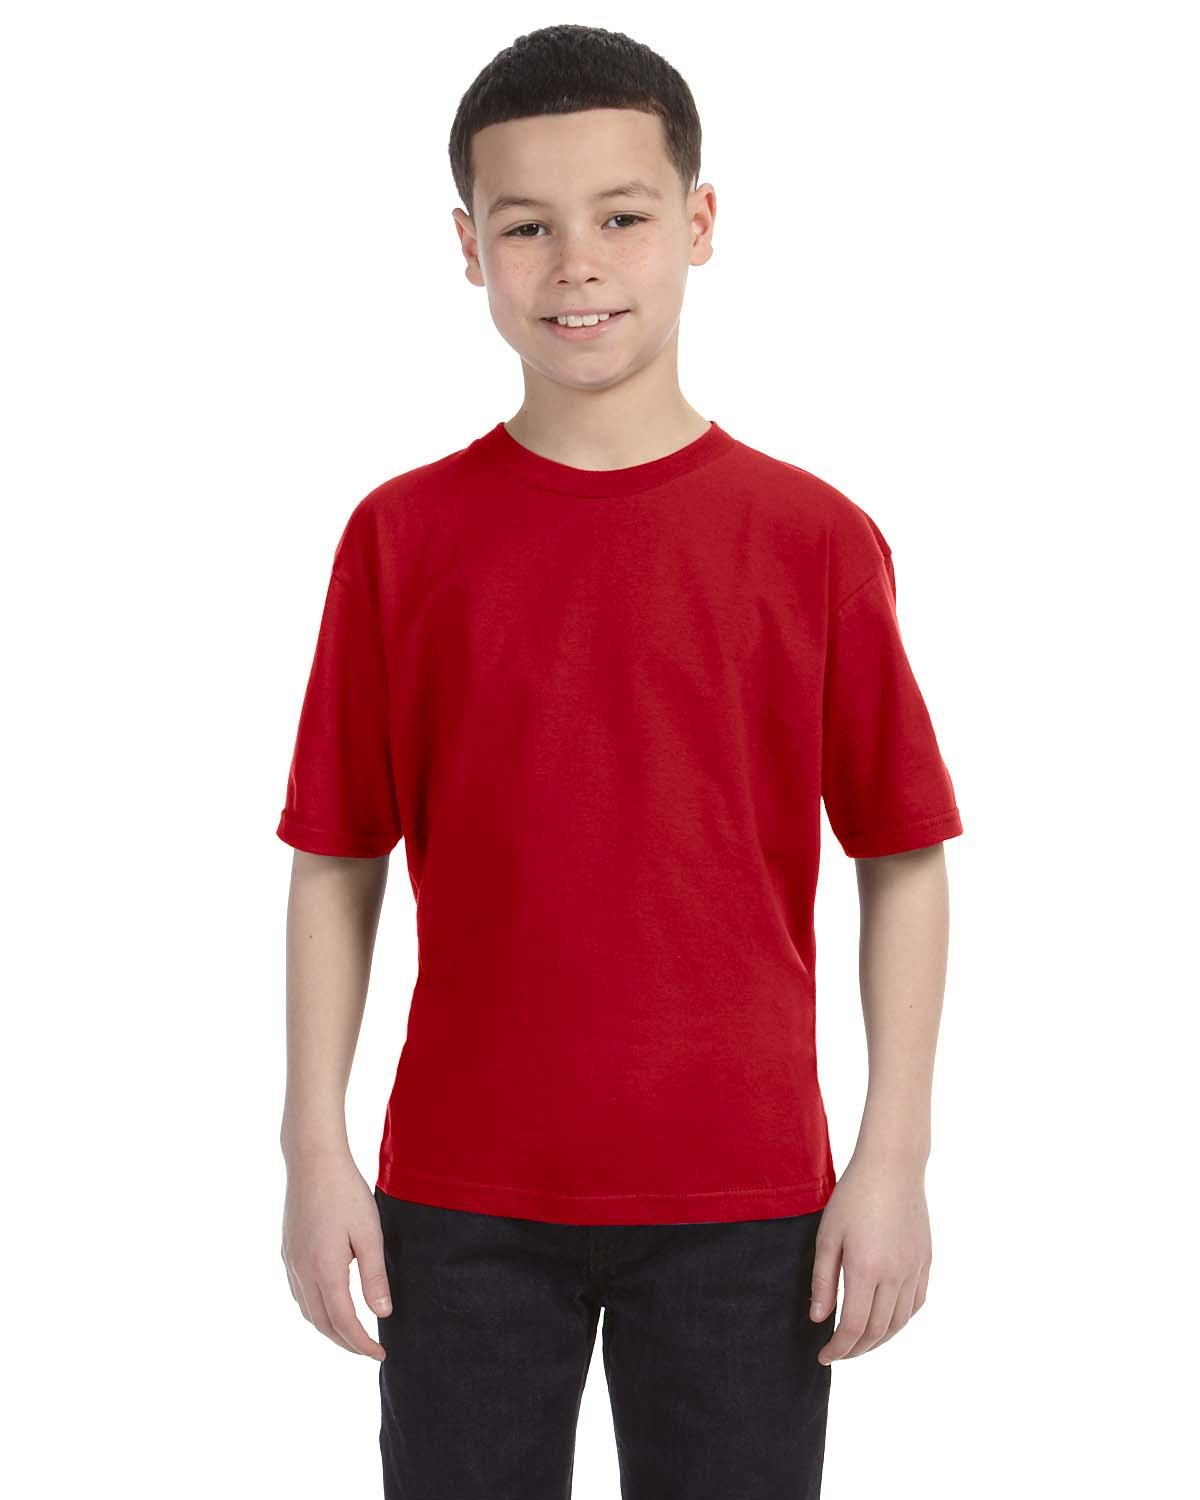 Anvil Youth Lightweight T-Shirt RED